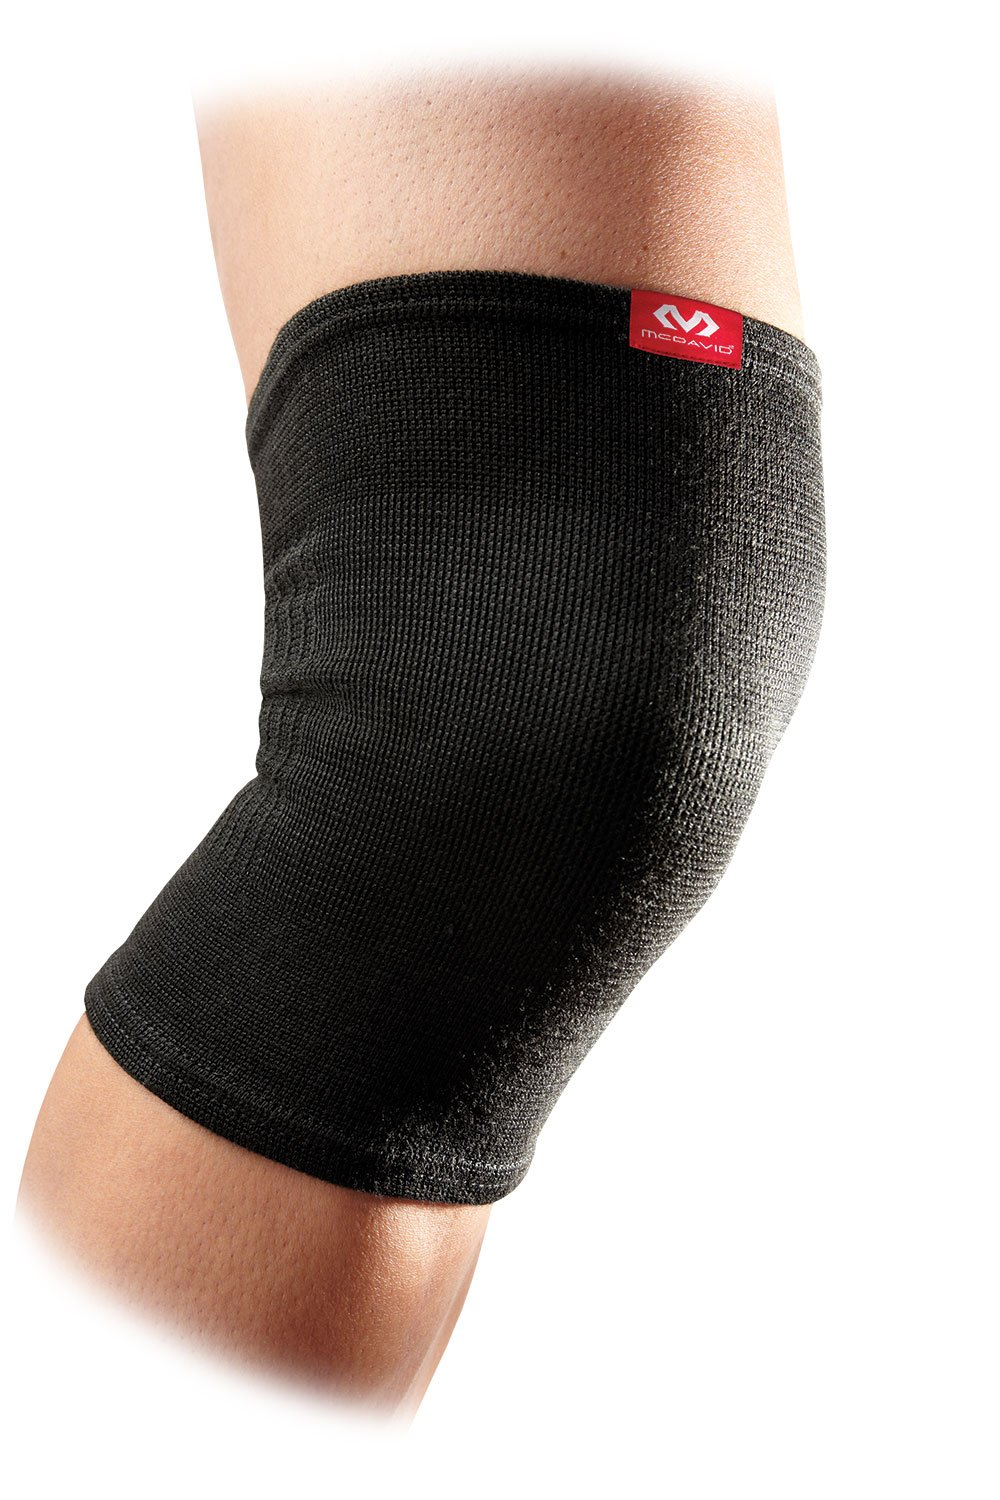 Top 10 Best McDavid Knee Pads (2020 Reviews & Buying Guide) 9